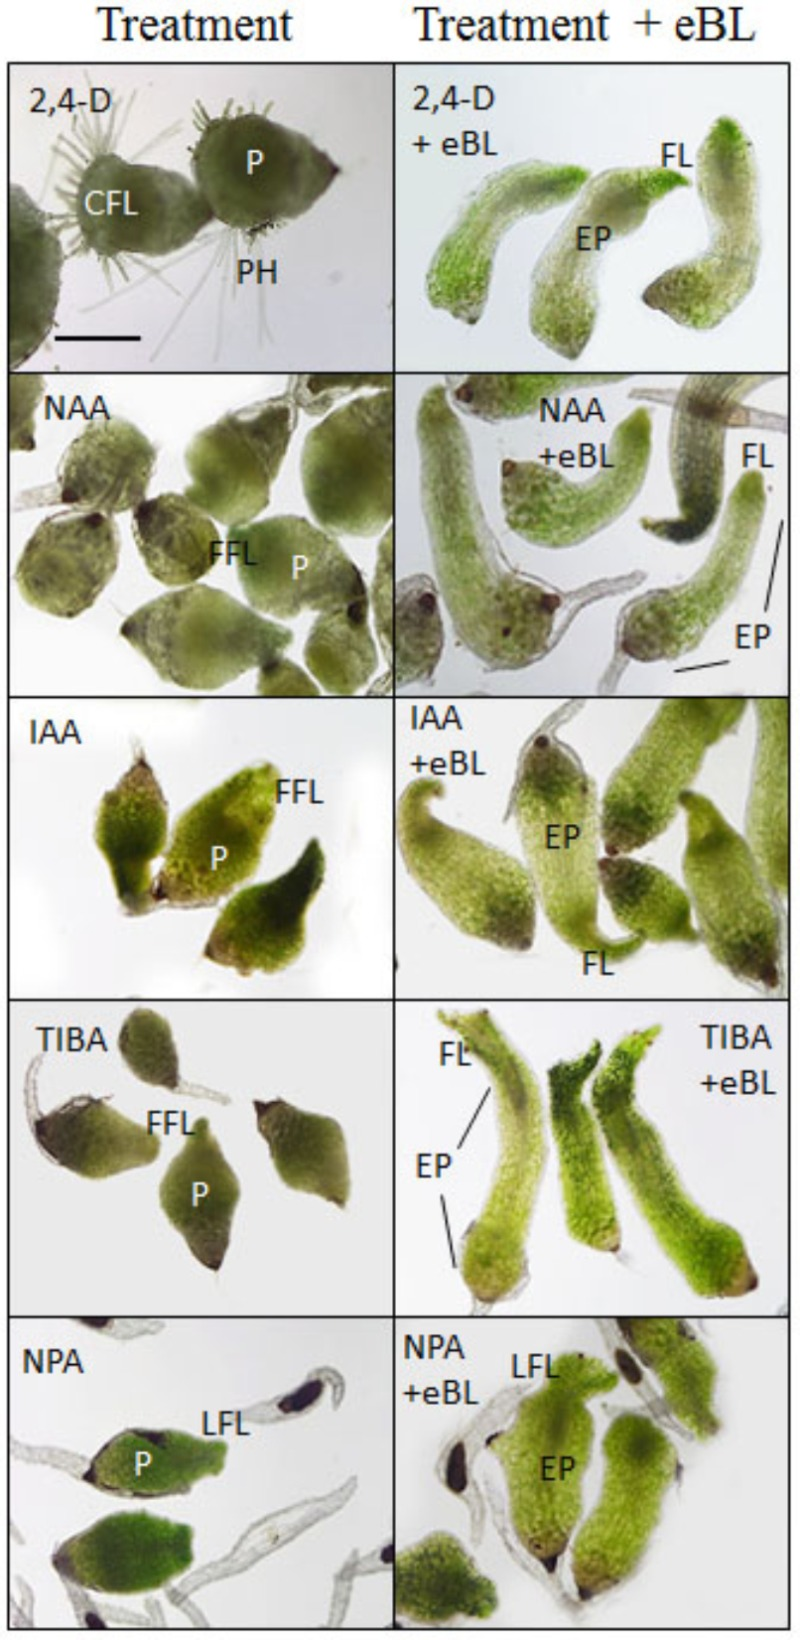 Seedling morphology for 10 DAC protocorms cultured with PAT inhibitors or growth inhibiting levels of auxin, with or without application of epibrassinolide (eBL) for an additional 15 days (25 DAC). 2,4-D, 2,4-dichlorophenoxyacetic acid; NAA, 1-naphthaleneacetic acid; IAA, indoleacetic acid; TIBA, 2,3,5-Triiodobenzoic acid; <t>NPA,</t> N <t>-1-naphthylphthalamic</t> acid. P, protocorm; EP, elongated protocorm; FL, first leaf; LFL, lobed first leaf; CFL, callused first leaf; FFL, fleshy first leaf; PH, protocorm hairs. Scale bar = 400 μm.